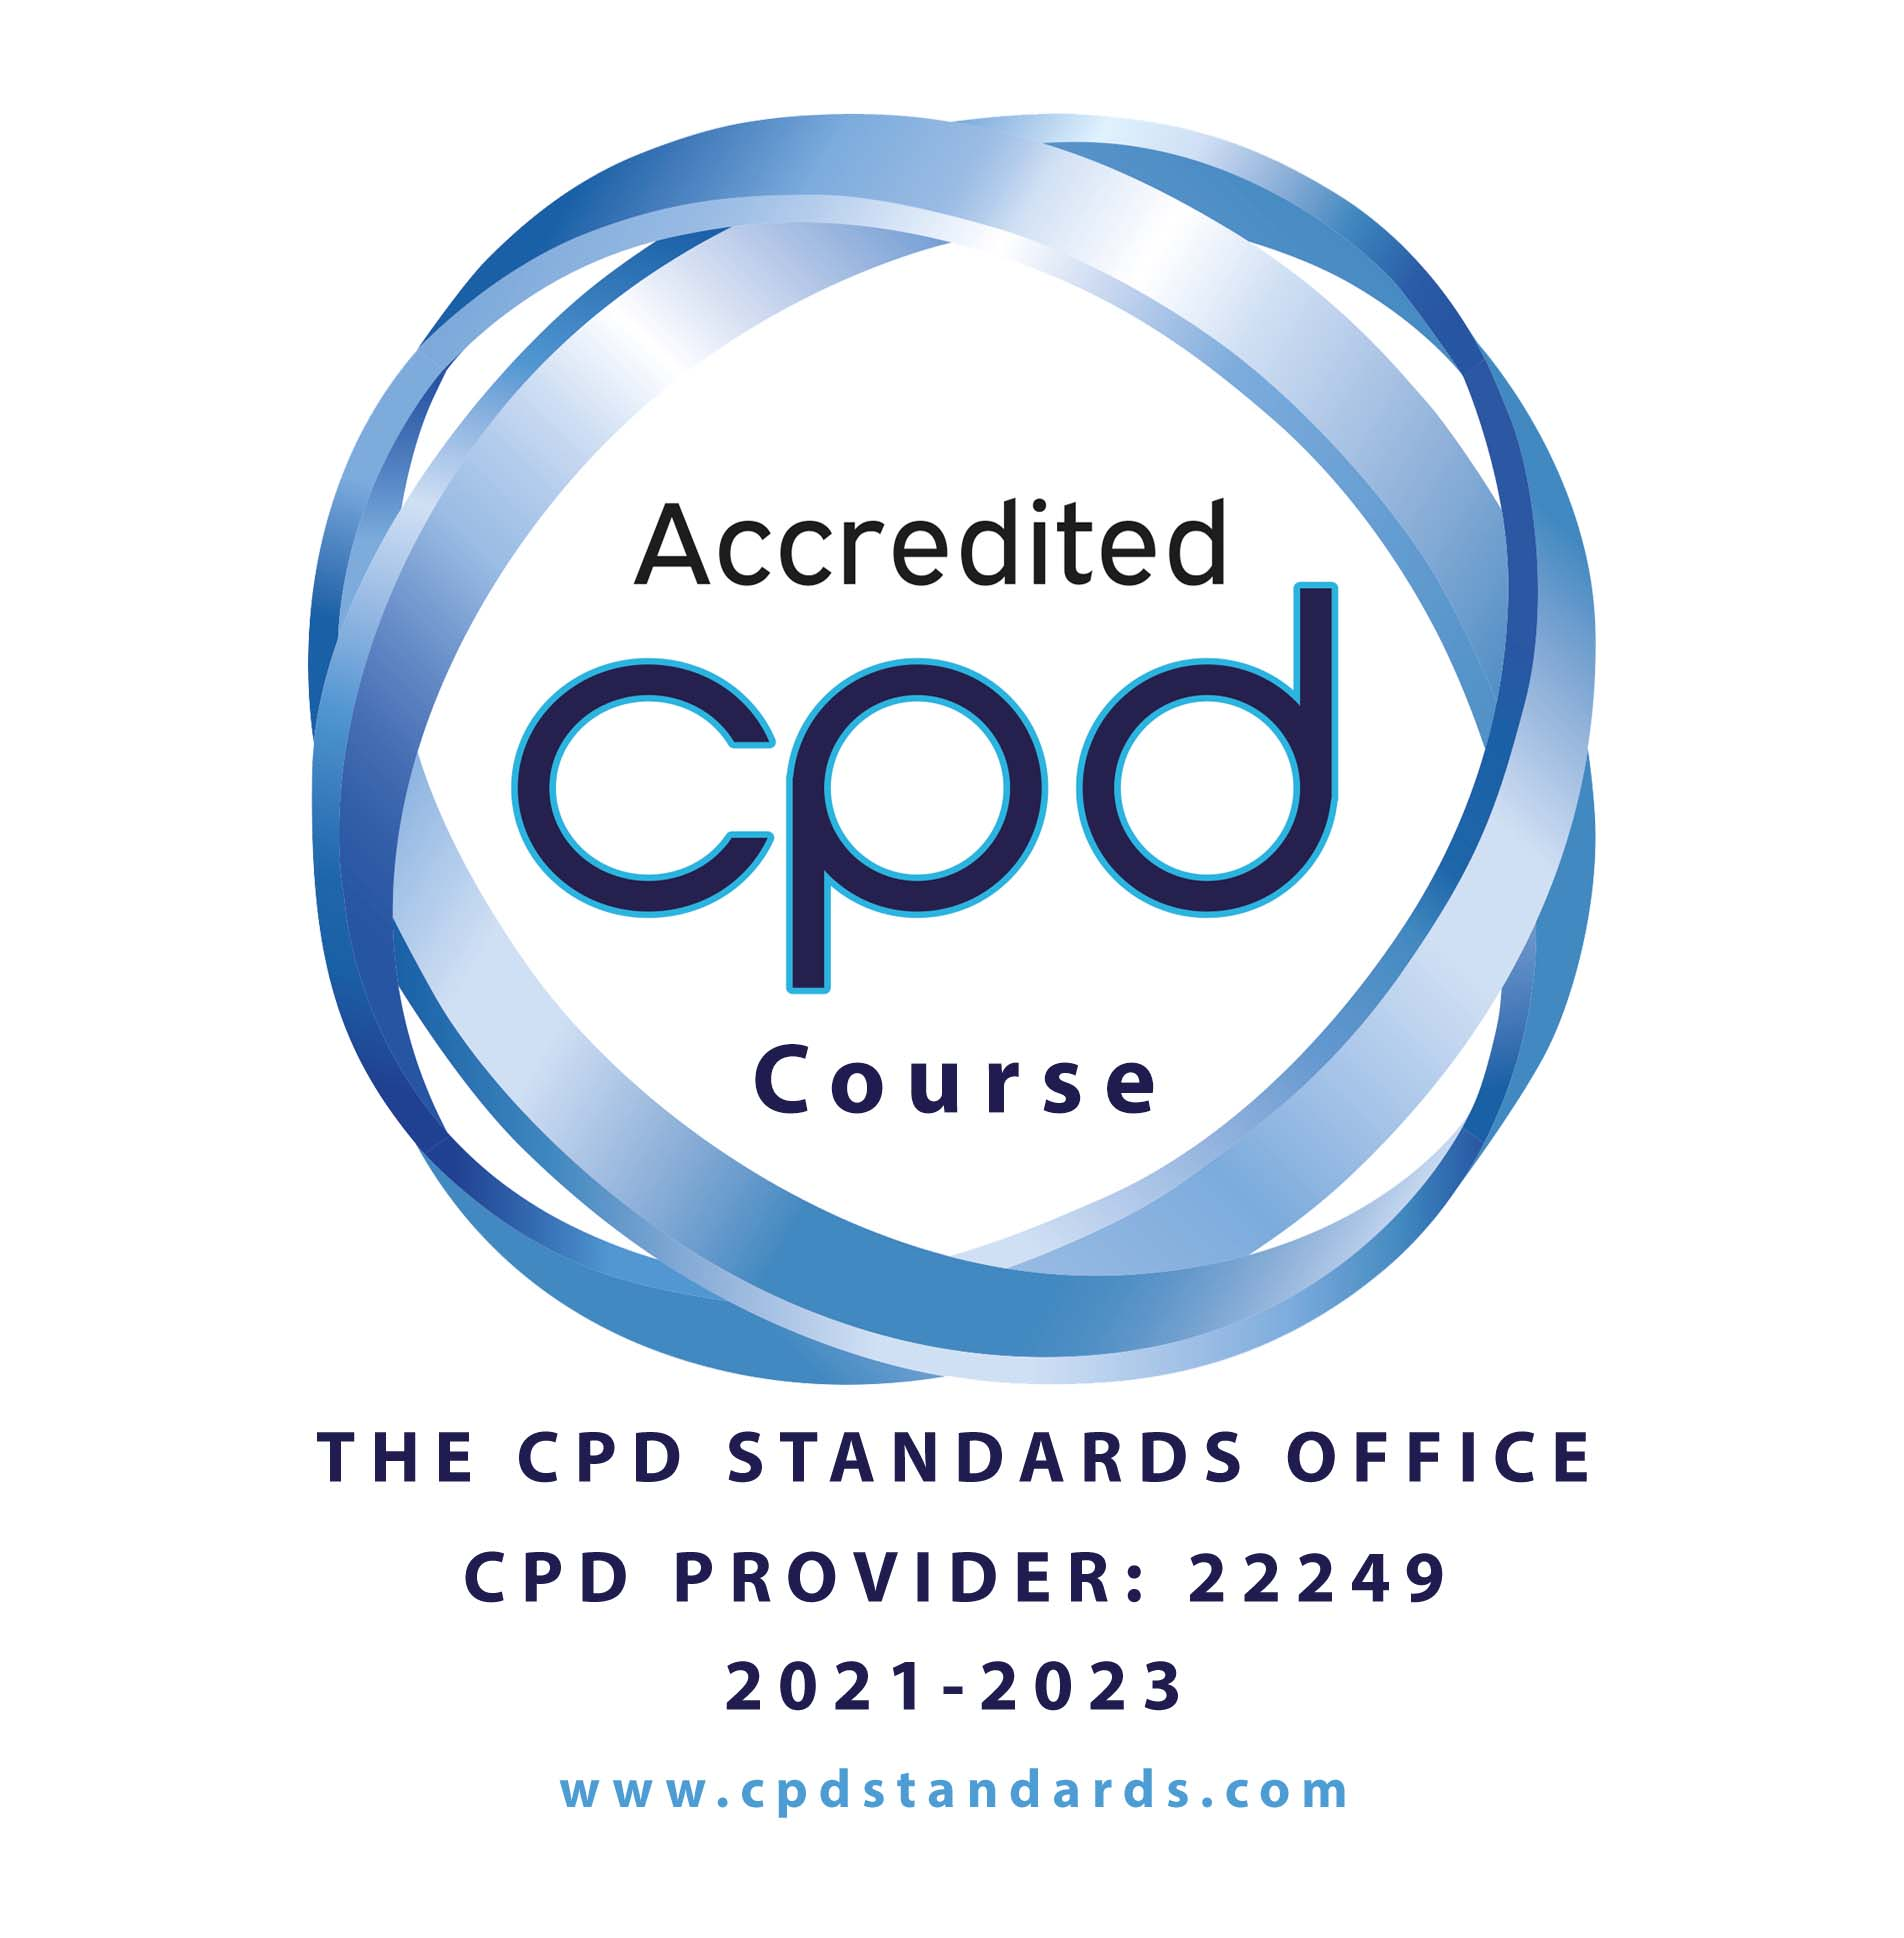 https://theevolvecompany.co.uk/wp-content/uploads/2021/10/CPD-Provider-Logo-Course-2021_CPD-PROVIDER-22249.jpg